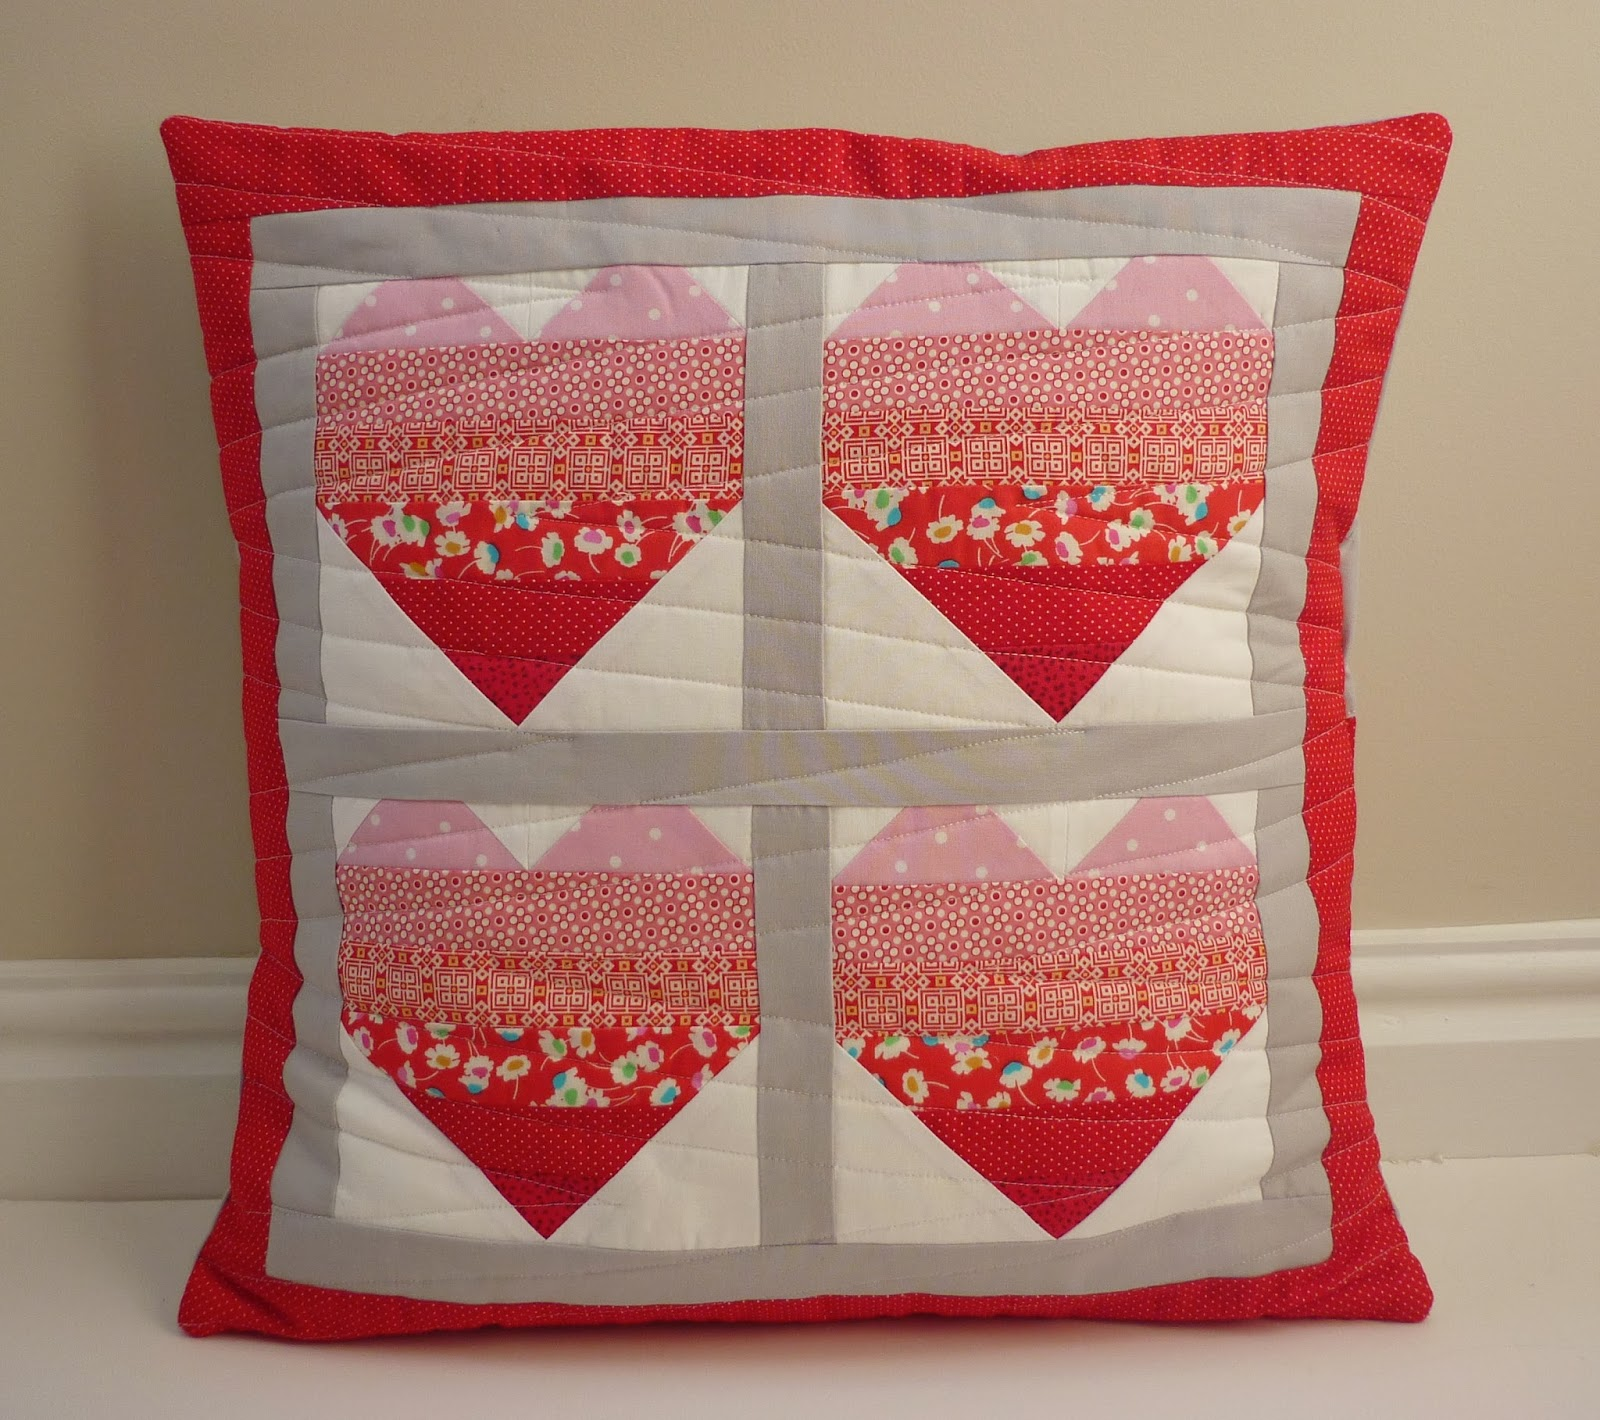 Mack and mabel quilt patterns quilted heart cushion tutorial orange peel cushion cover tutorial cushion cover has machine appliqud and quilted front and envelope back bankloansurffo Gallery